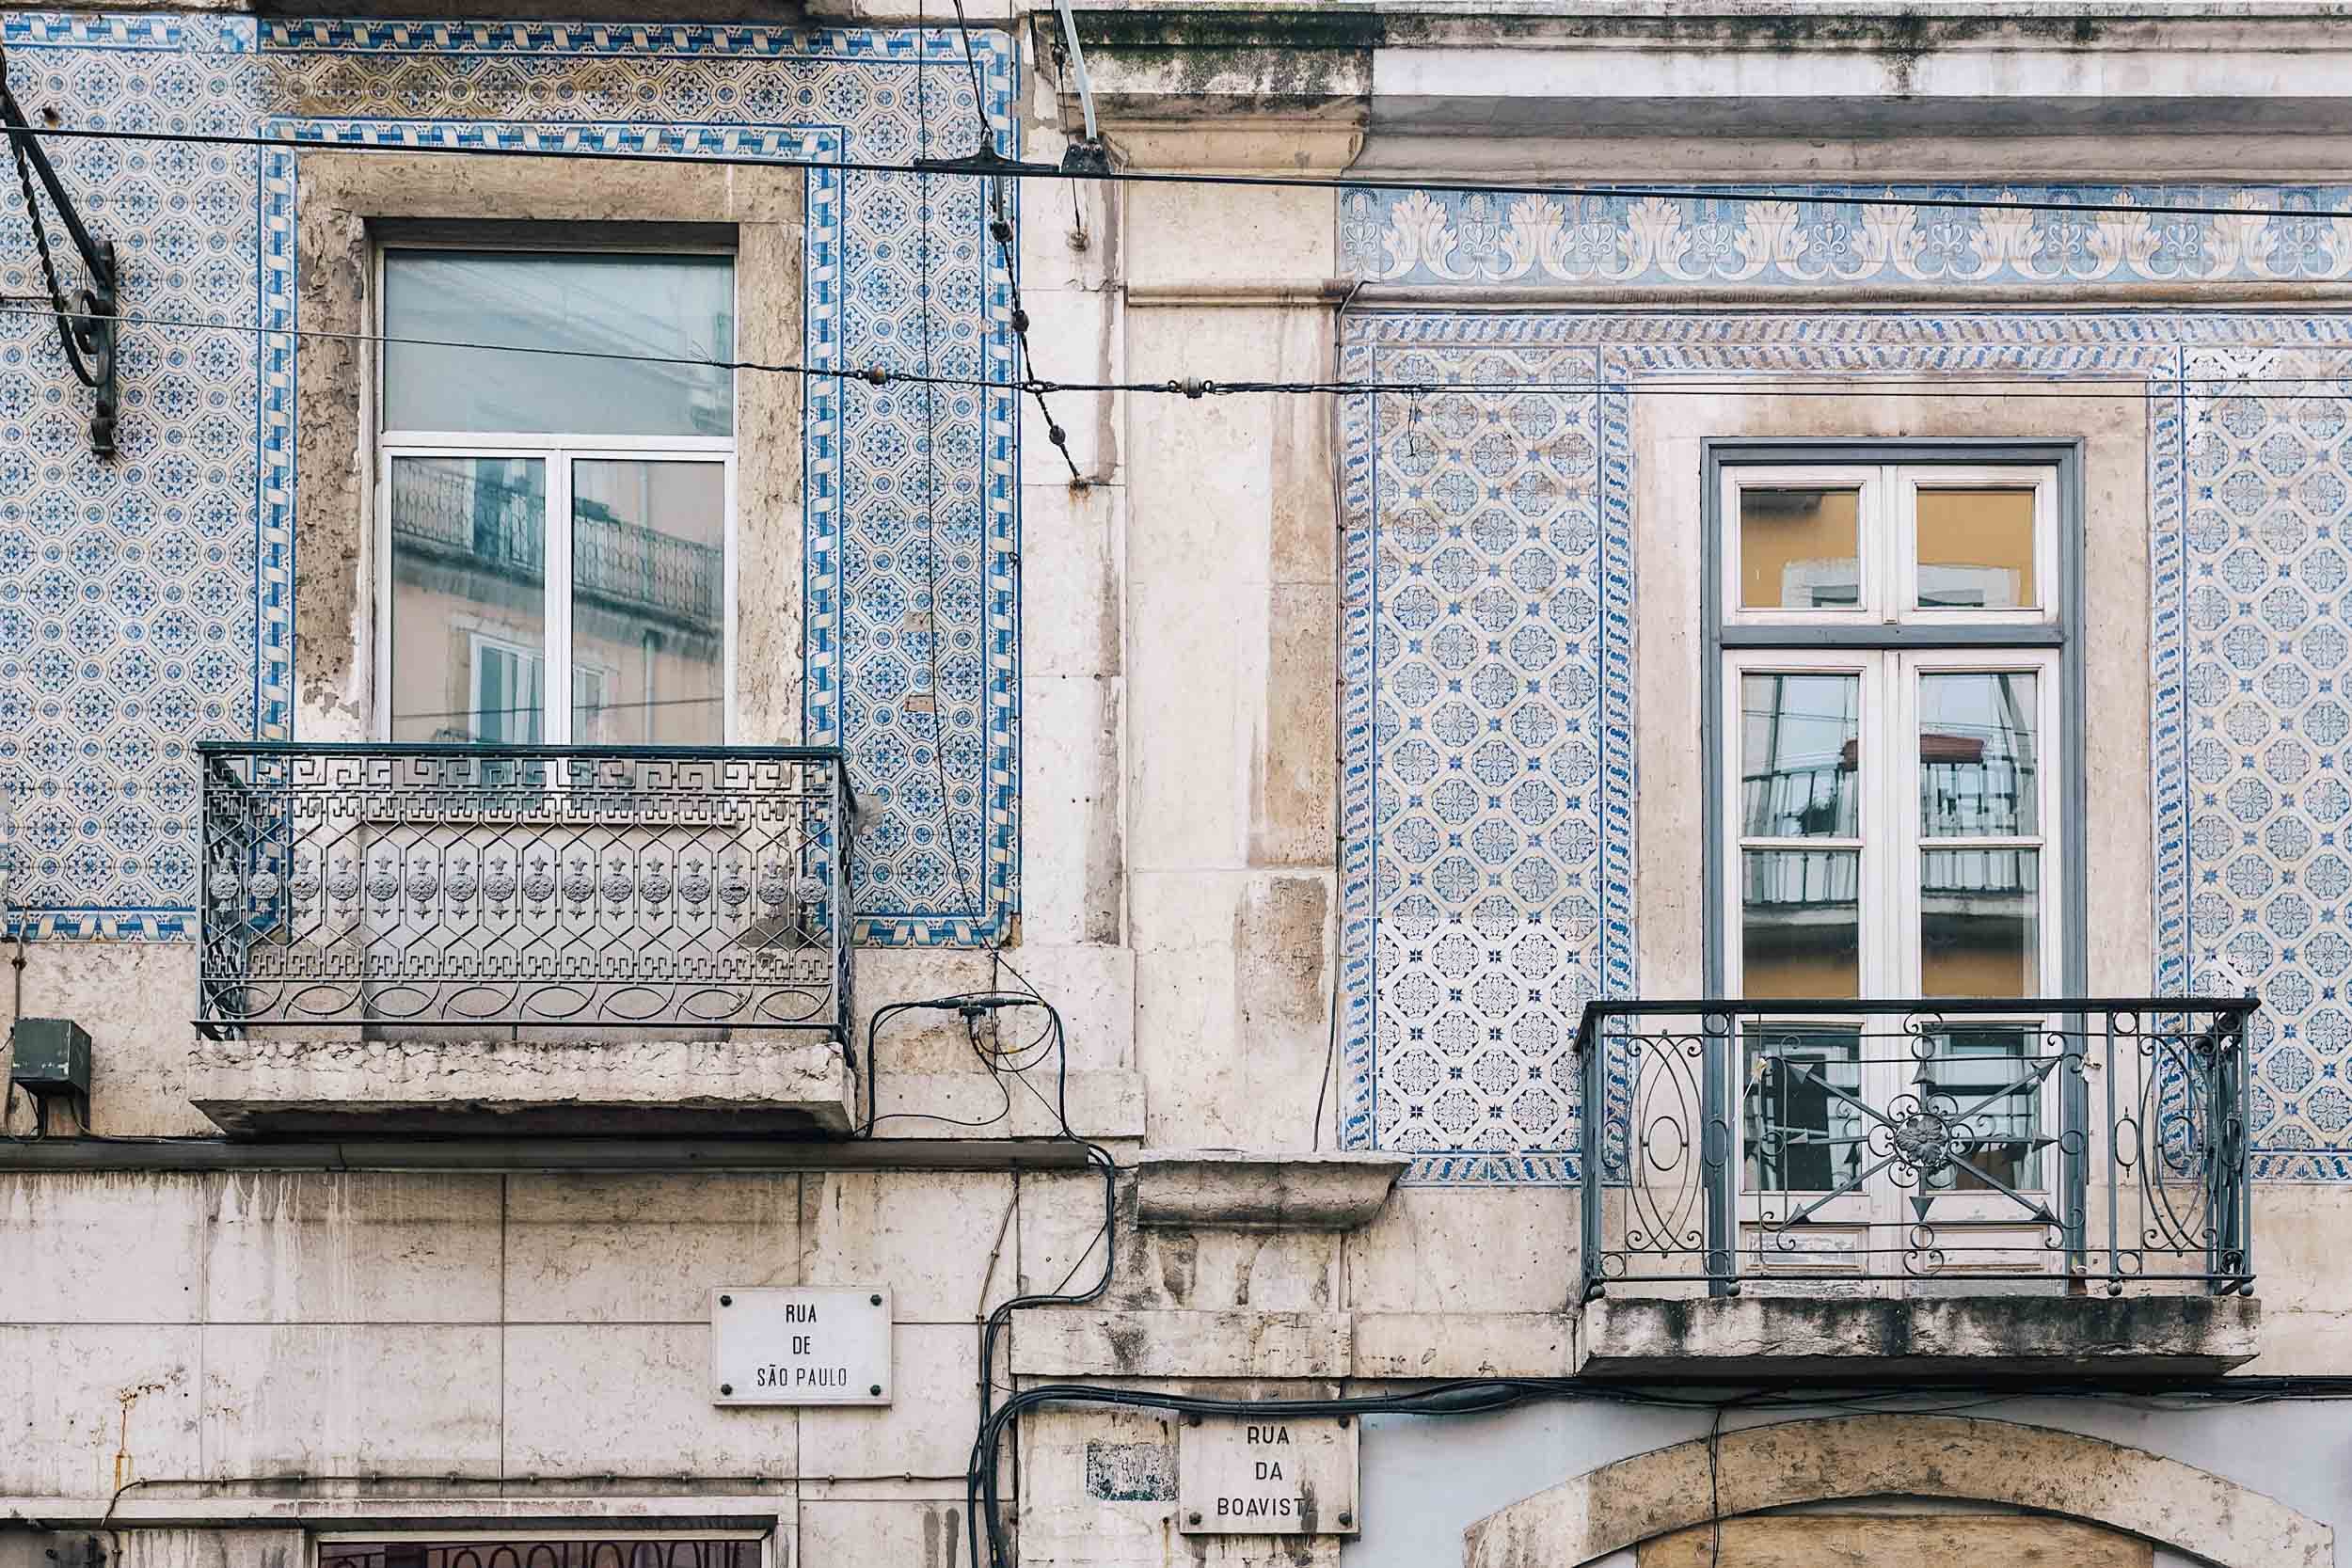 Trying to decide what to do in Lisbon? Here are 8 things you shouldn't miss